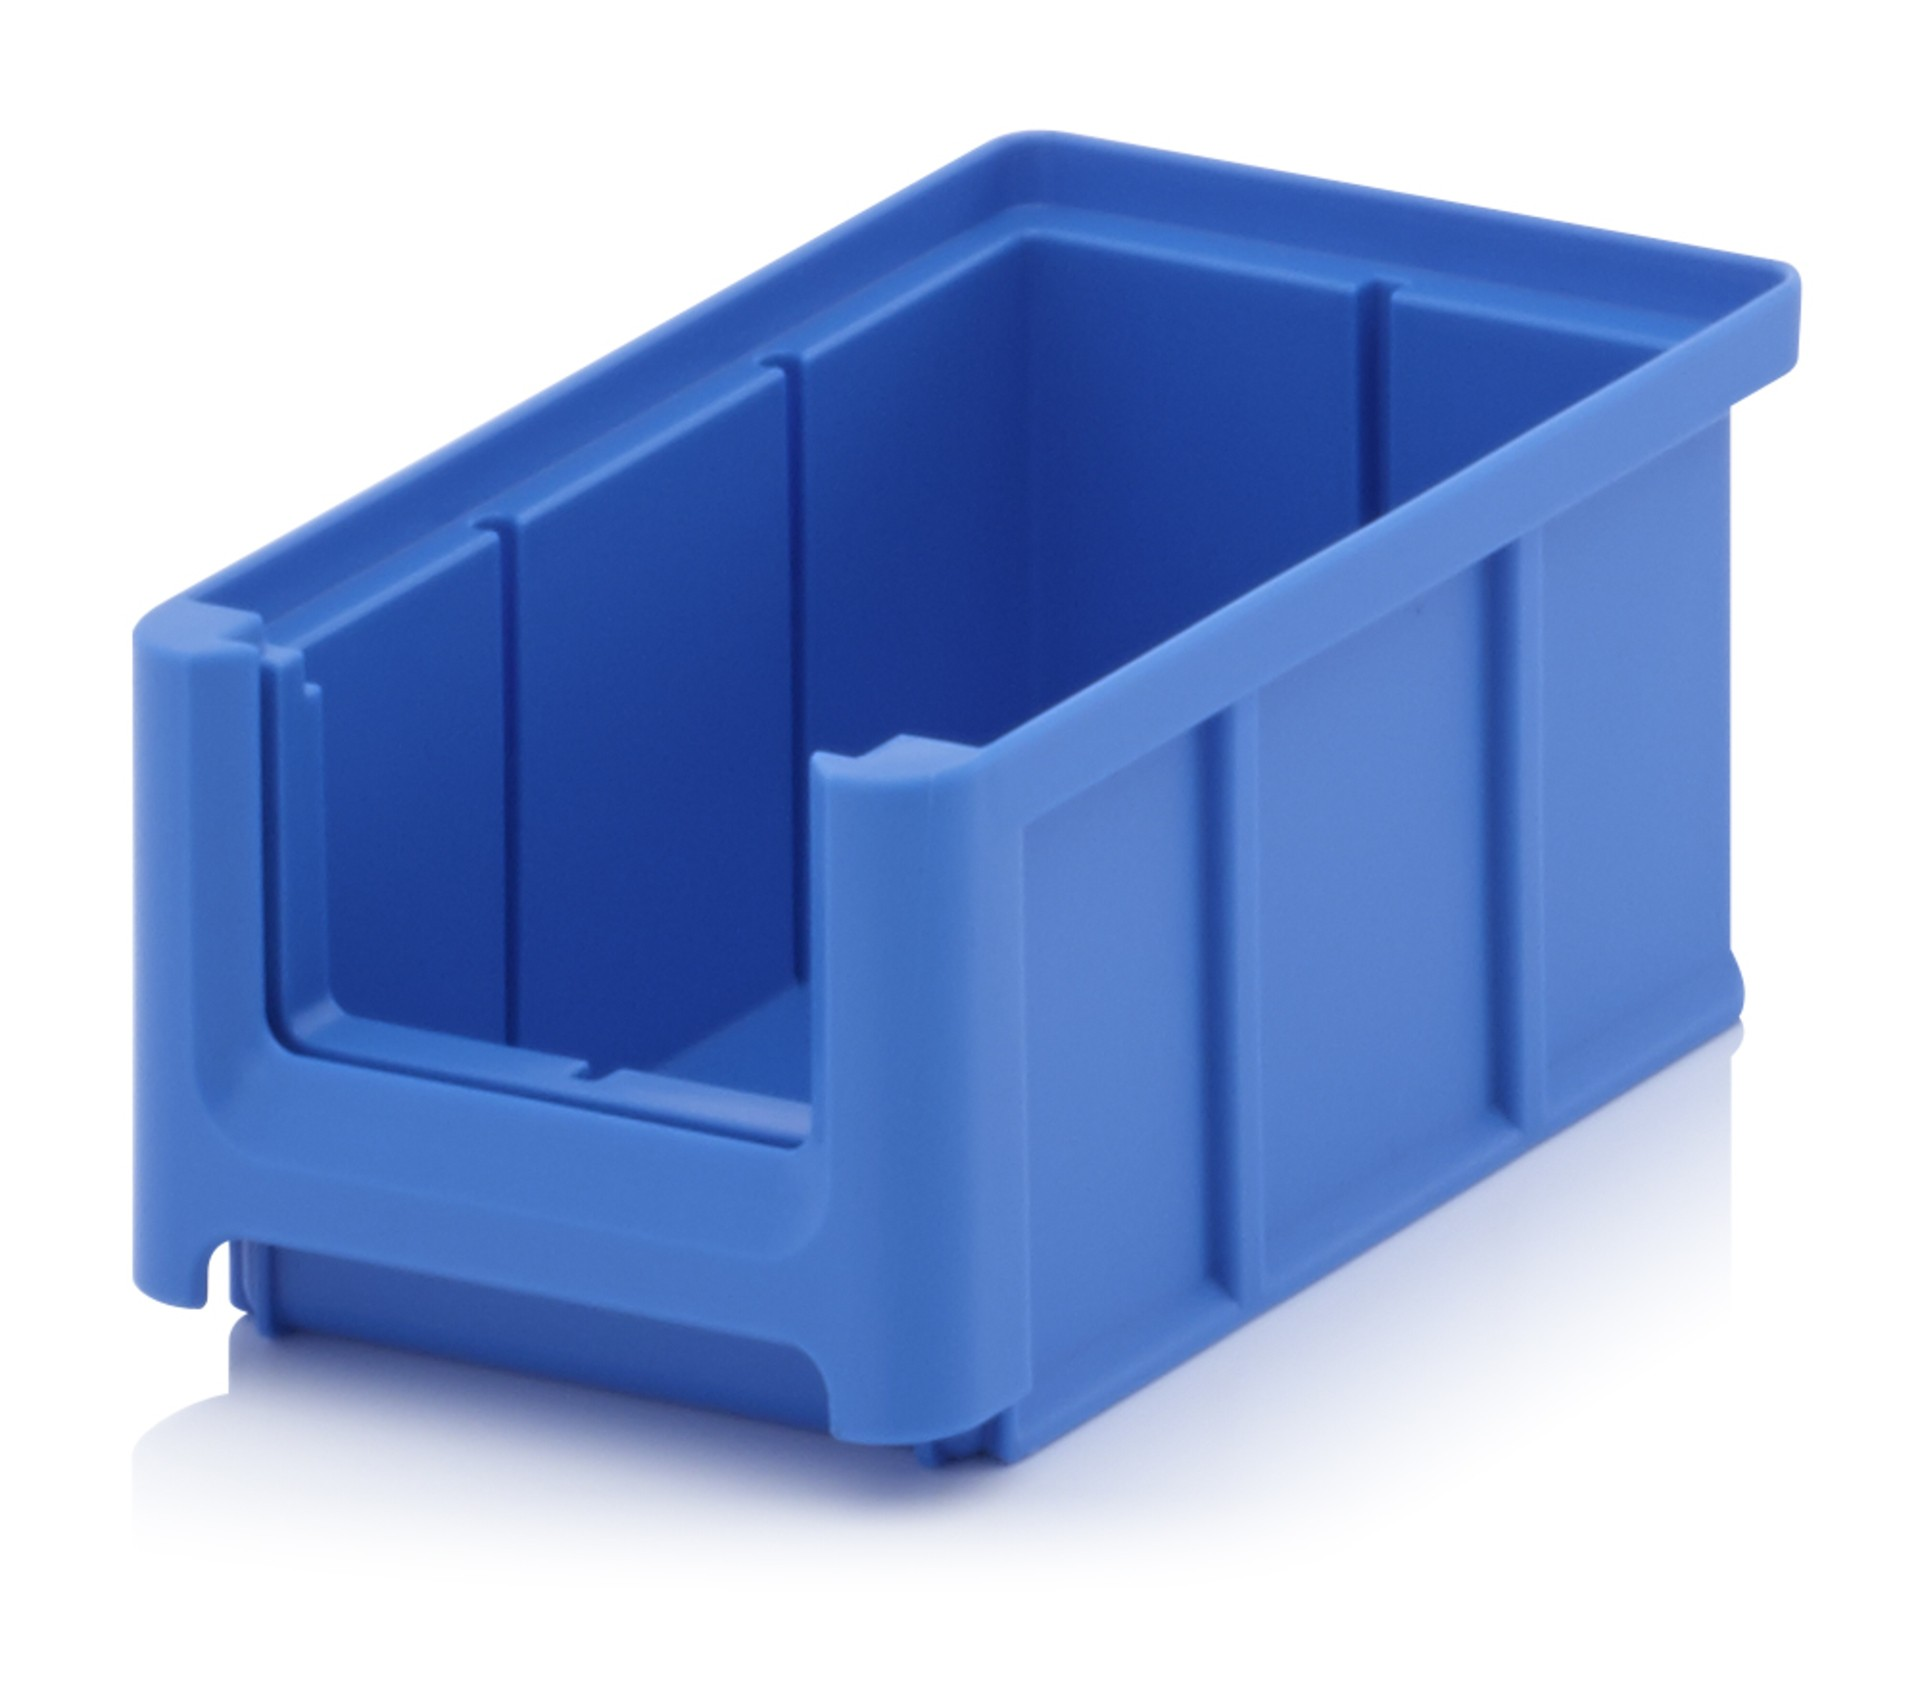 XS Open Fronted Small Parts/Components Storage Bin